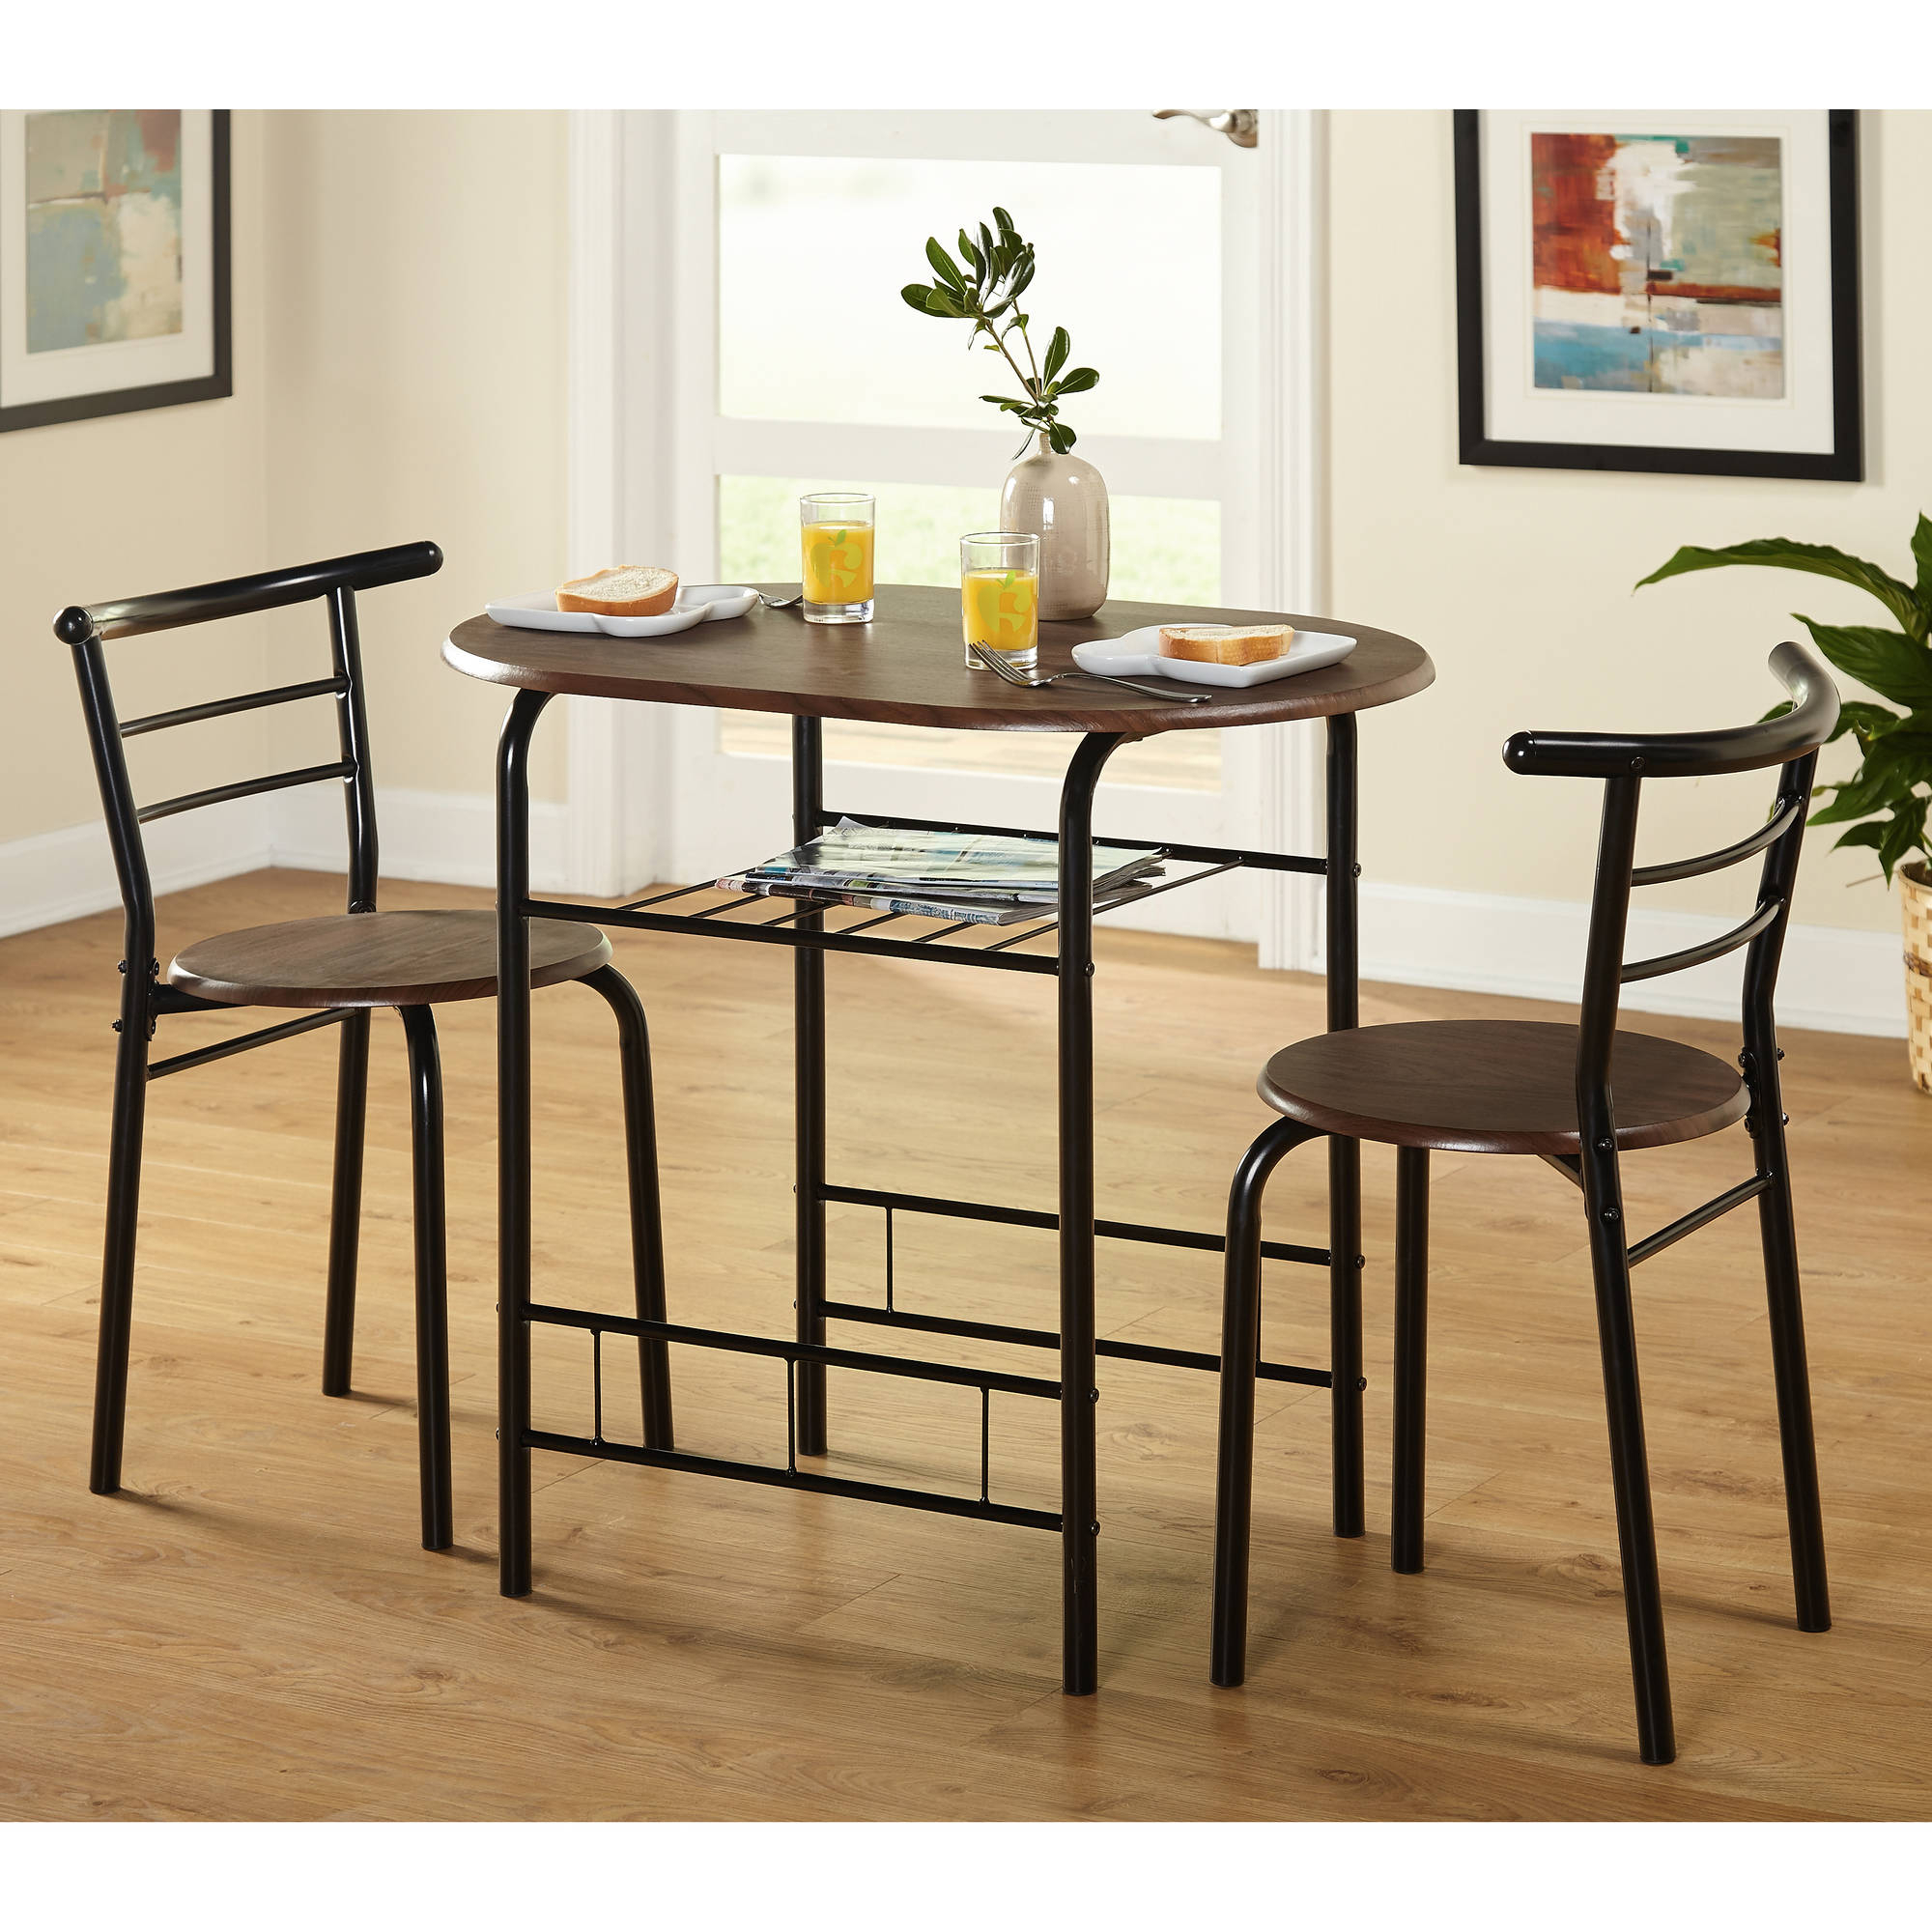 Favorite 3 Piece Dining Sets Intended For Tms 3 Piece Bistro Dining Set (View 7 of 20)